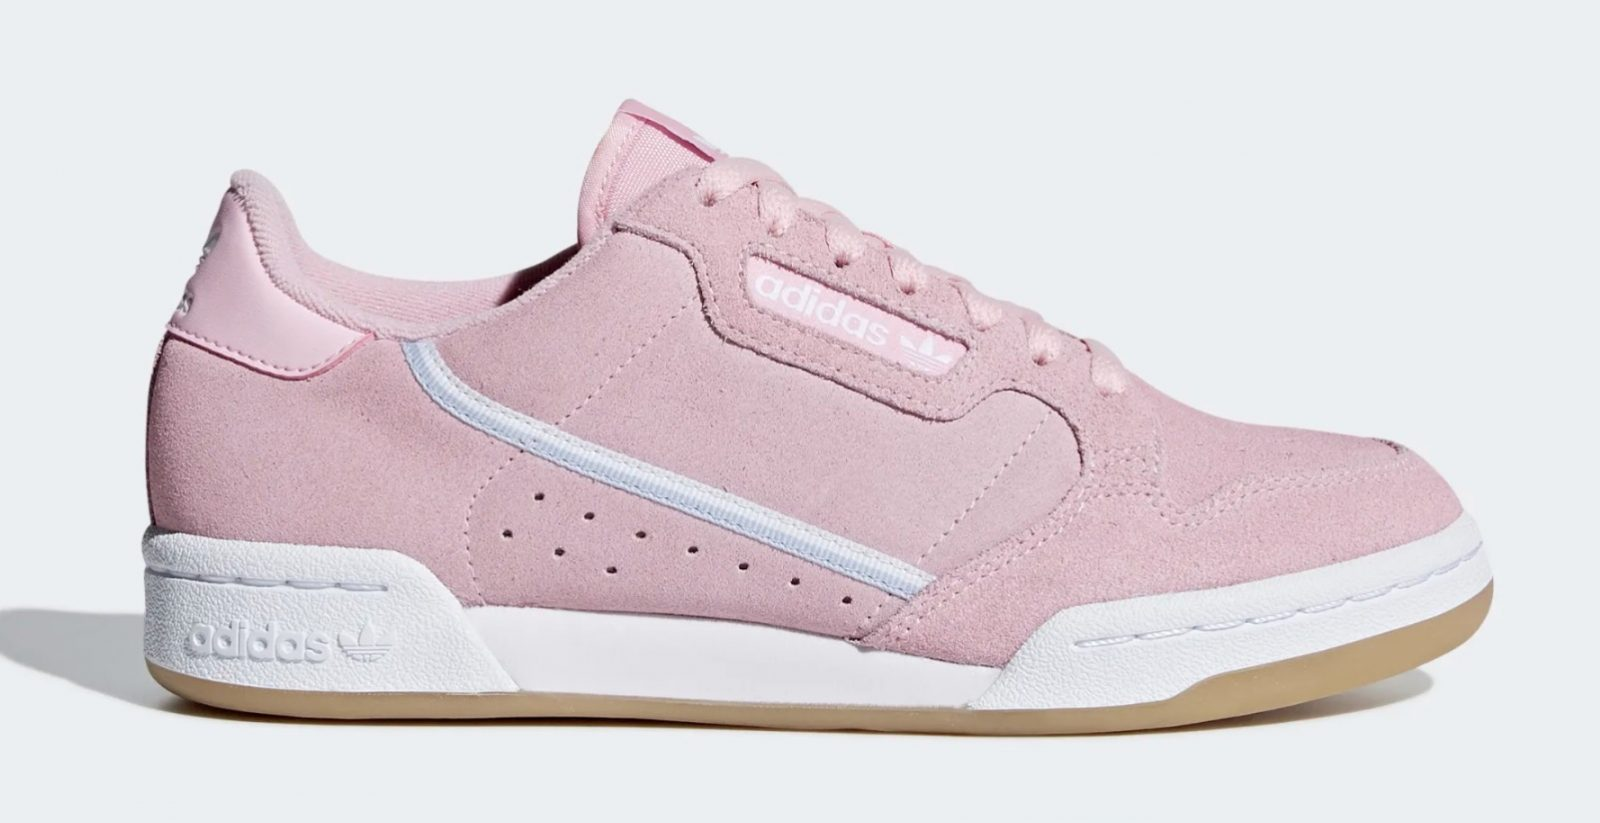 adidas Continental 80 Pink Suede